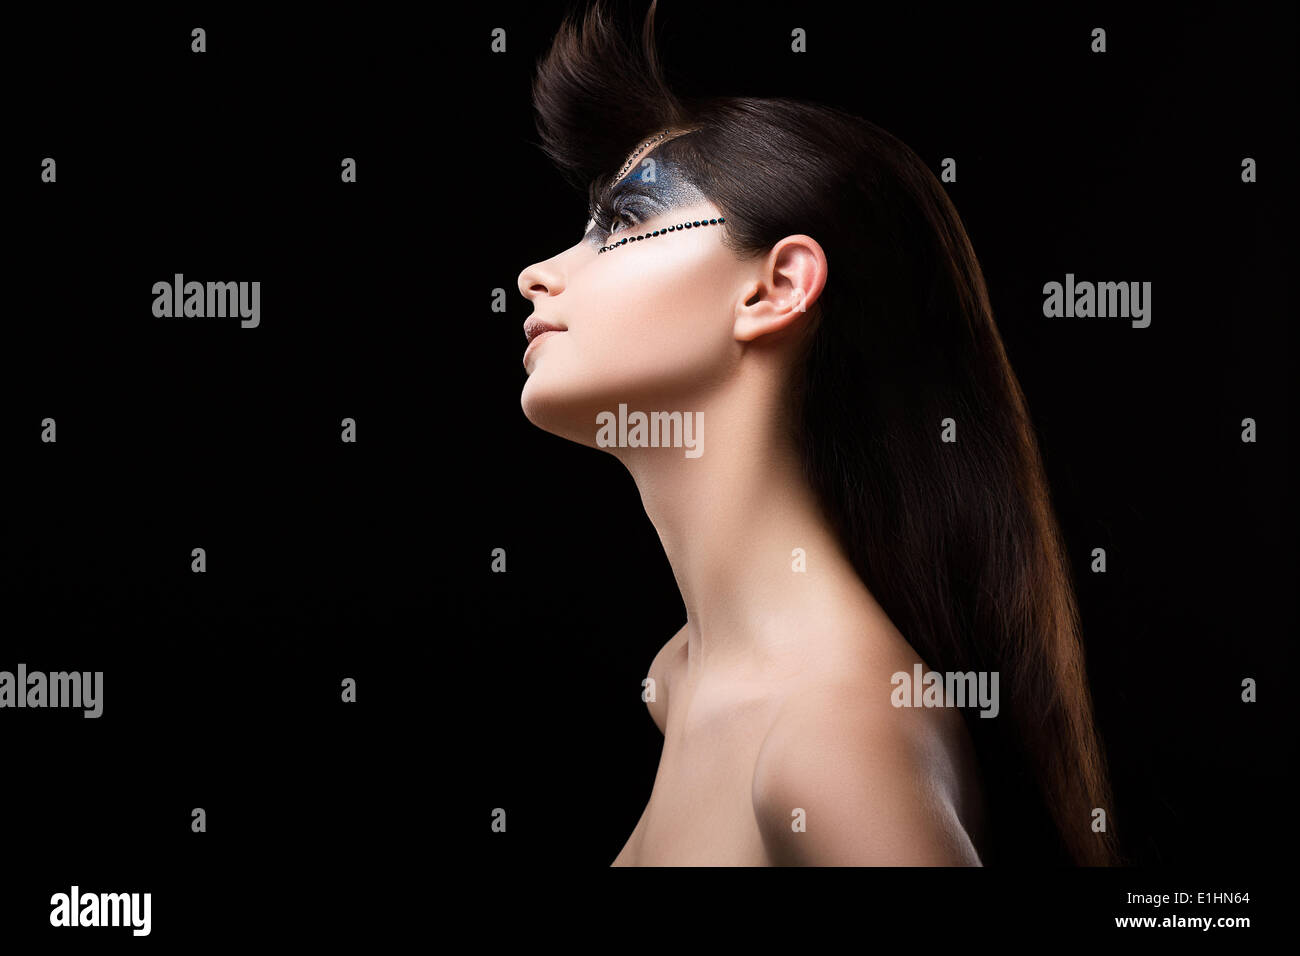 Glitter. Profile of Brown Hair Woman with Blue Eye Shadows and Strass on her Face - Stock Image